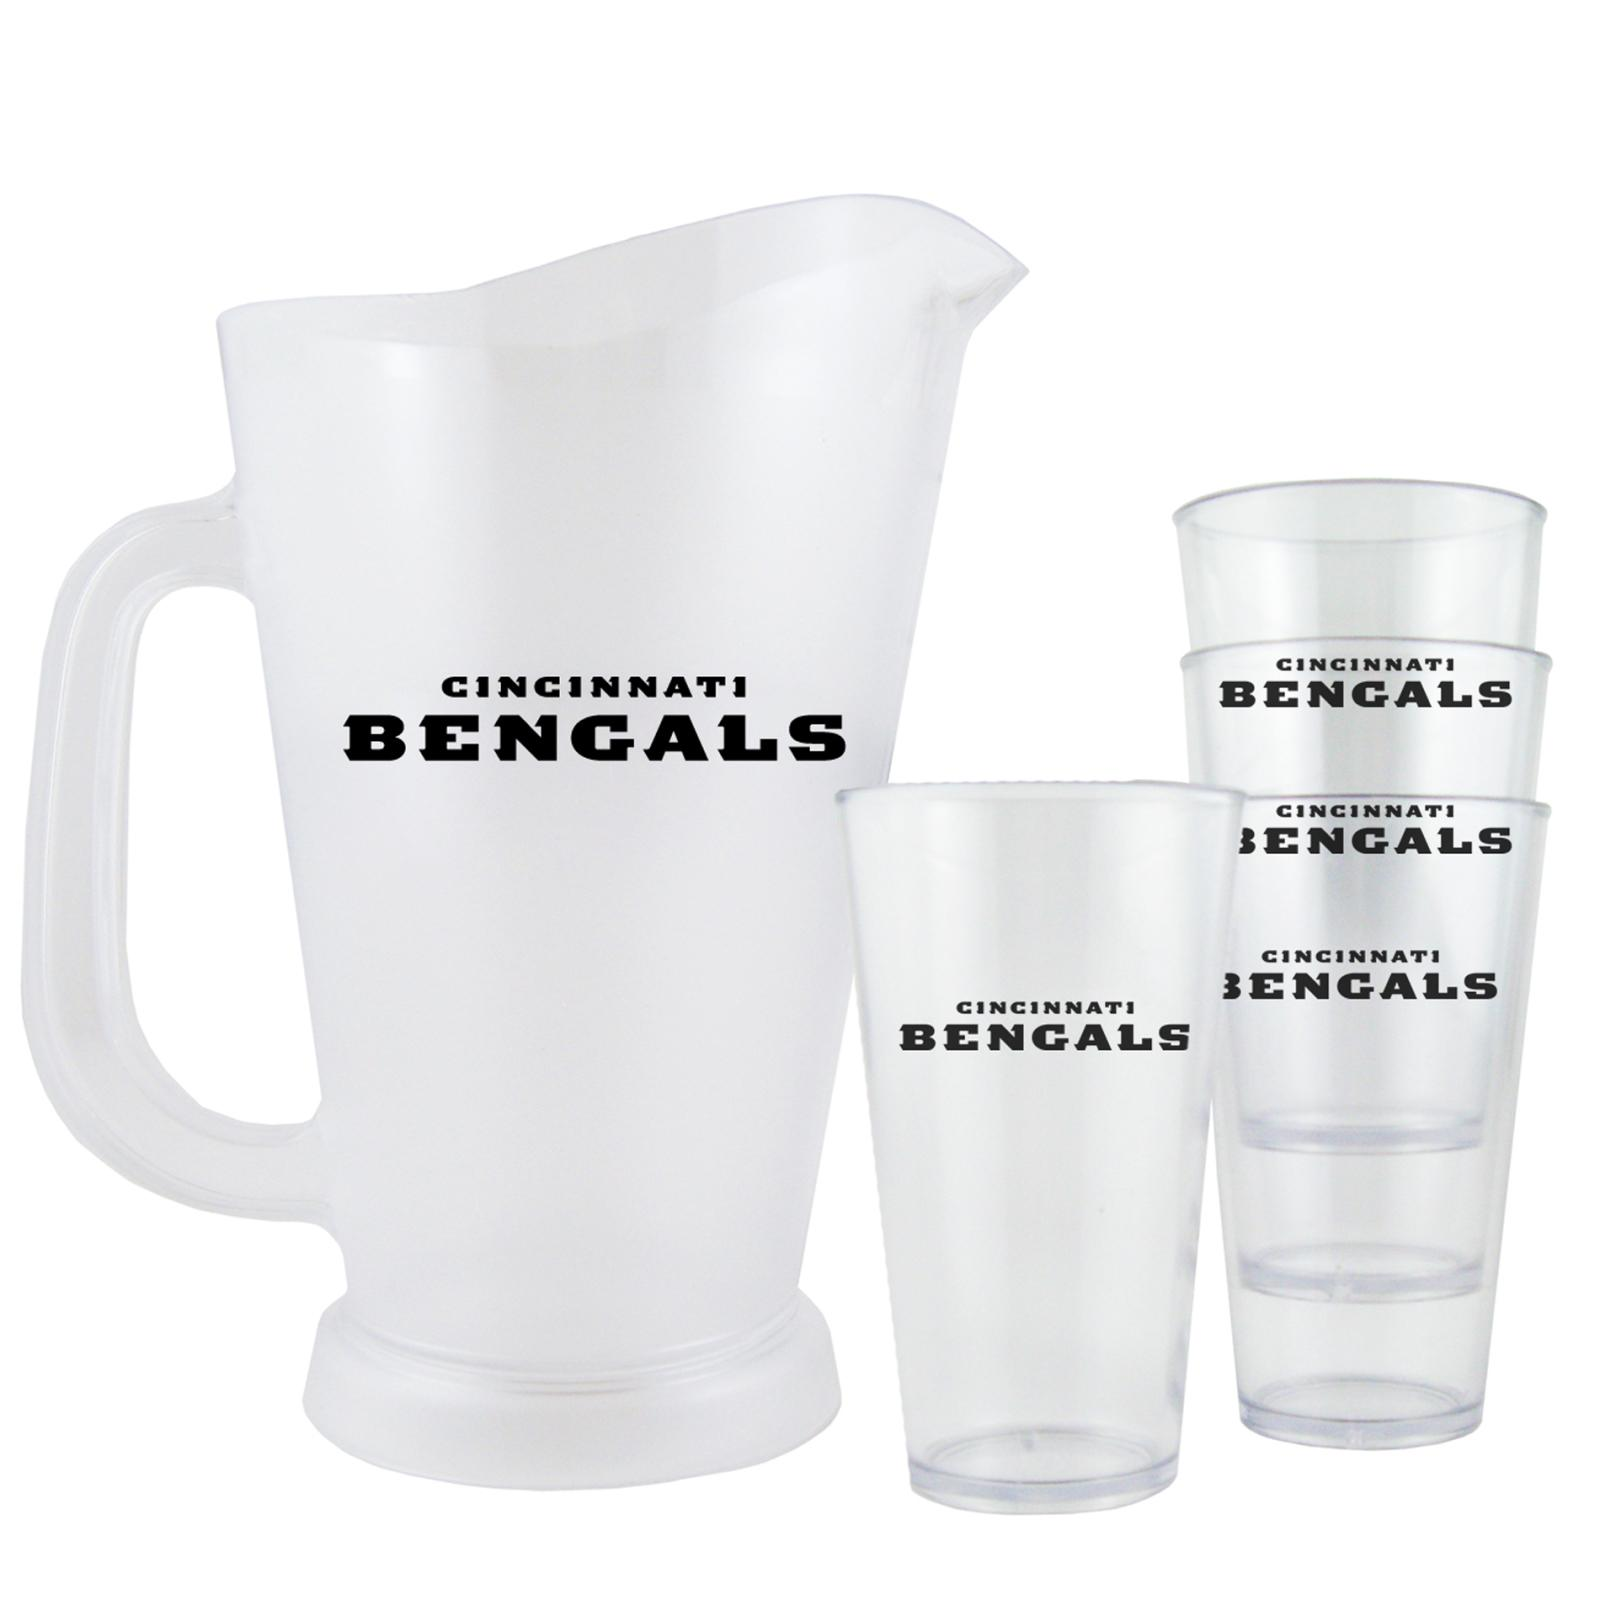 Cincinnati Bengals NFL Pitcher and Pint Glasses Set